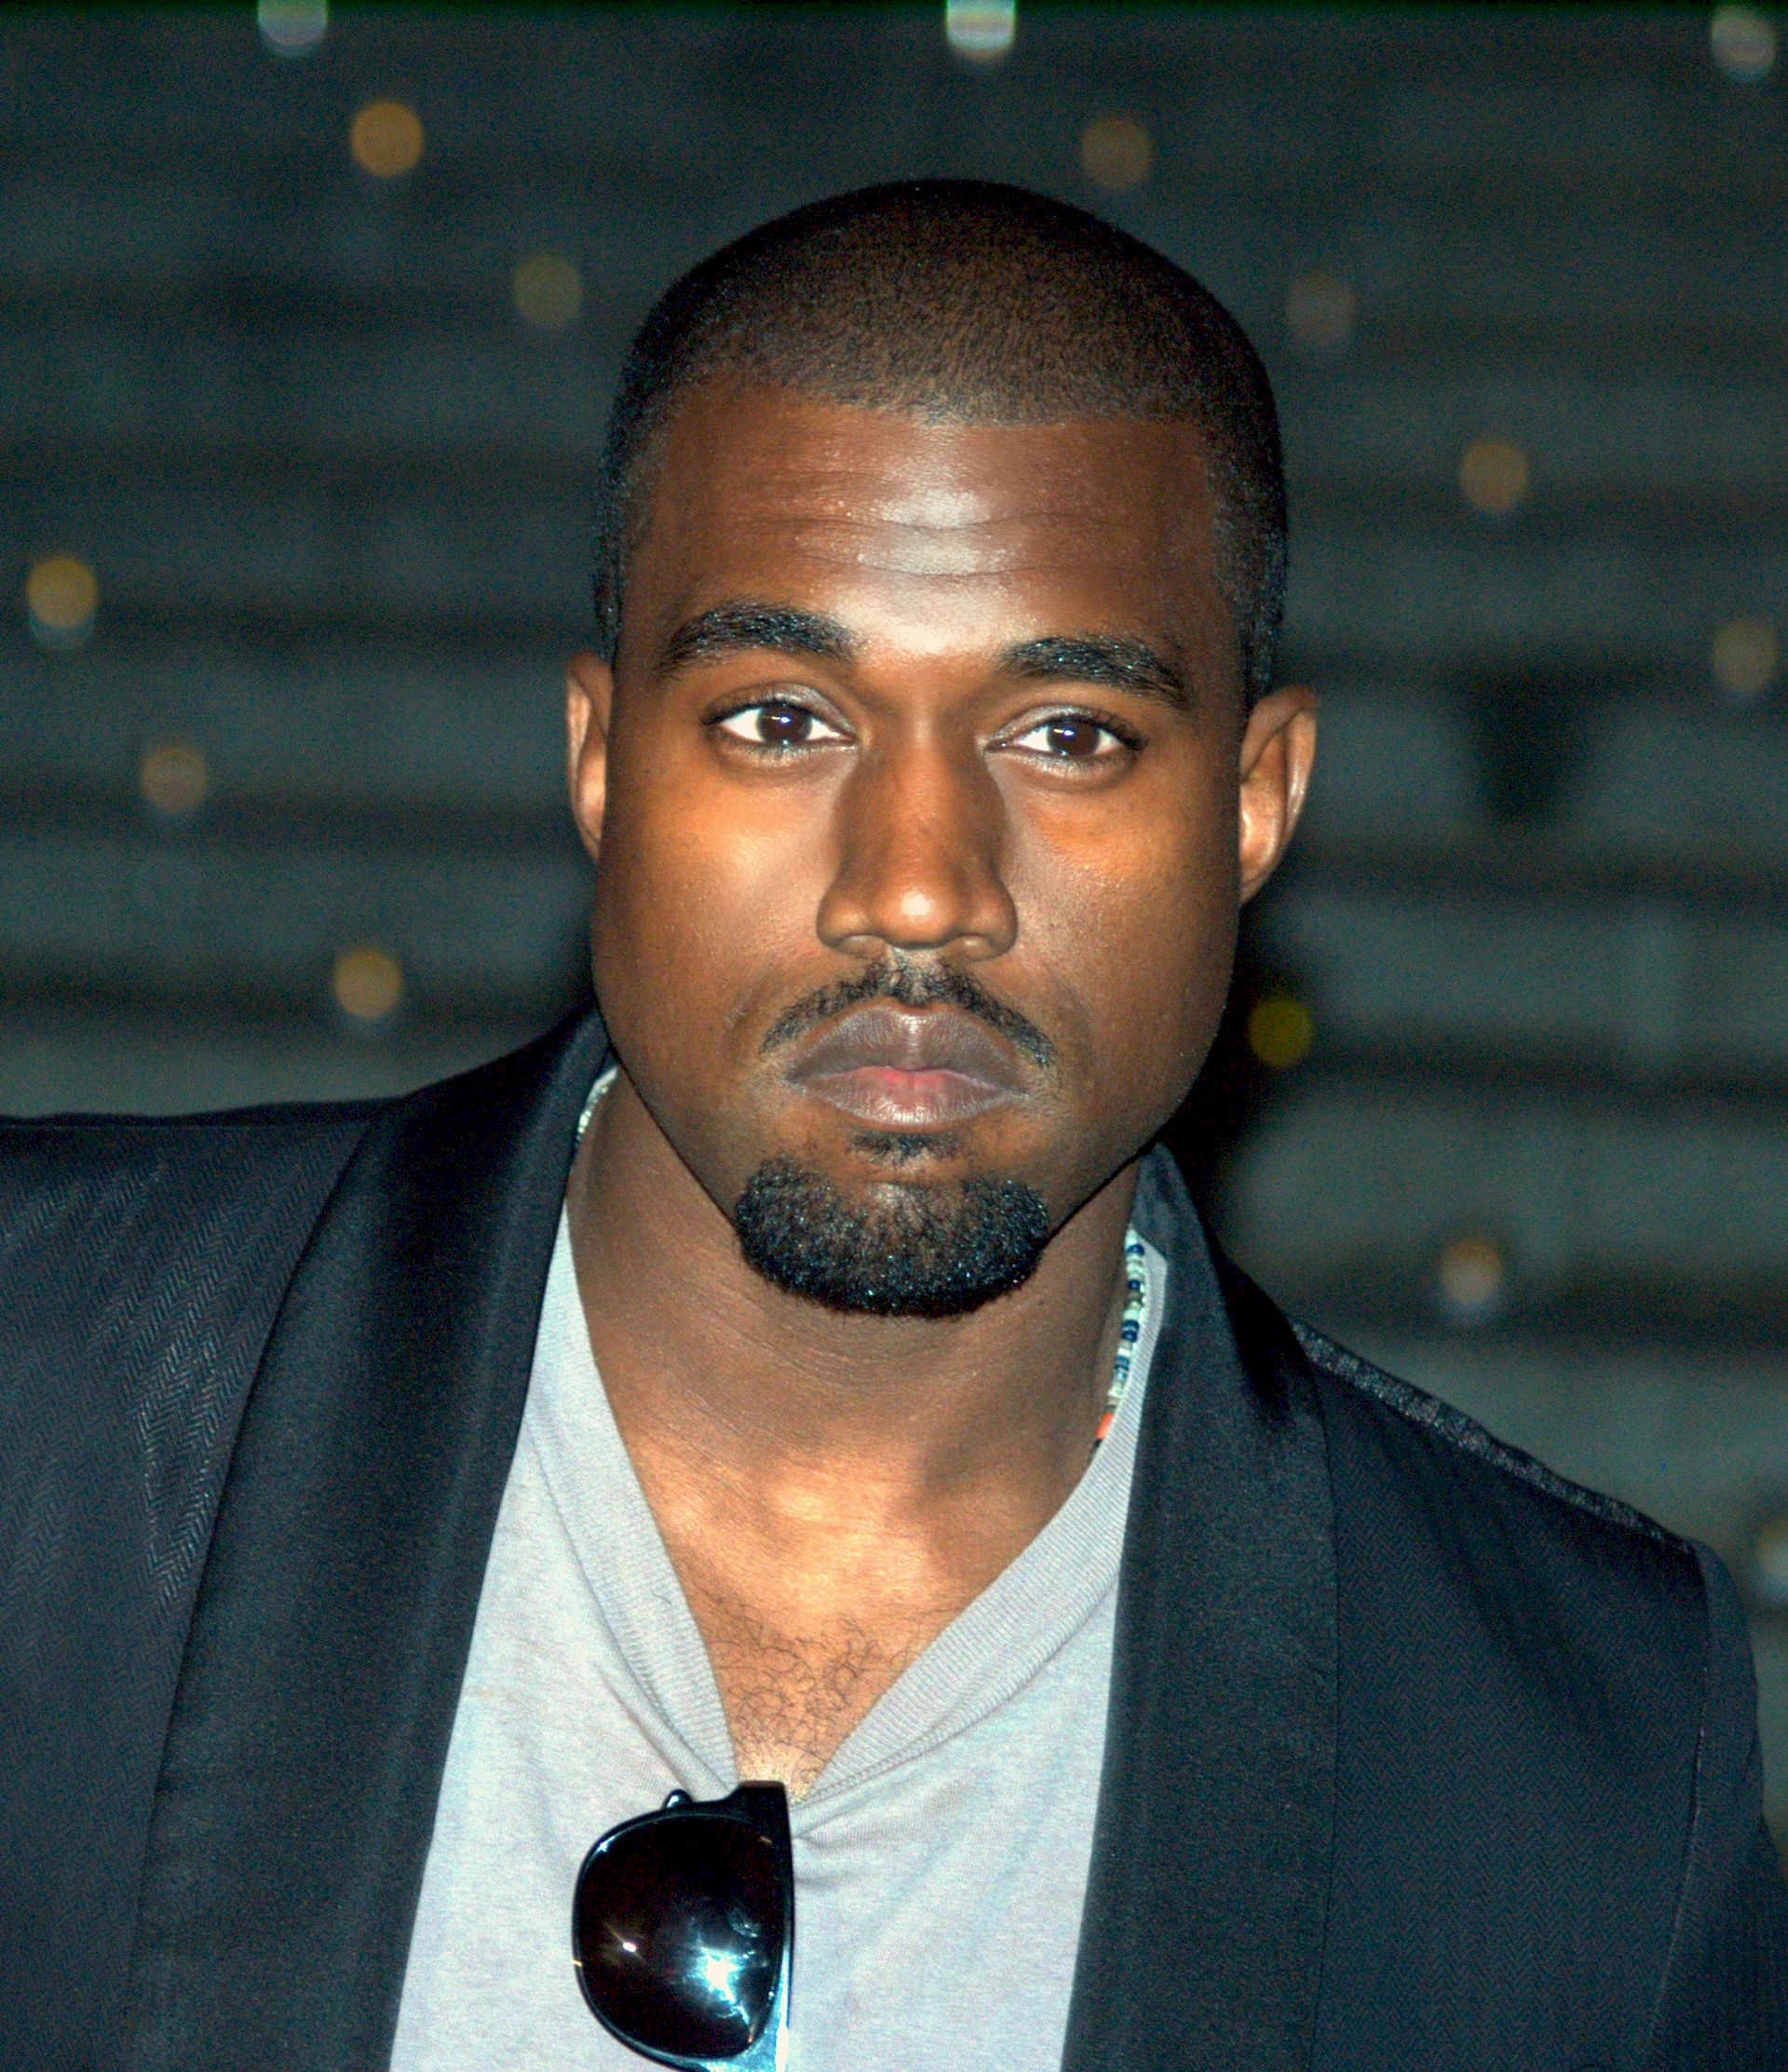 Photo of Kanye West: American recording artist